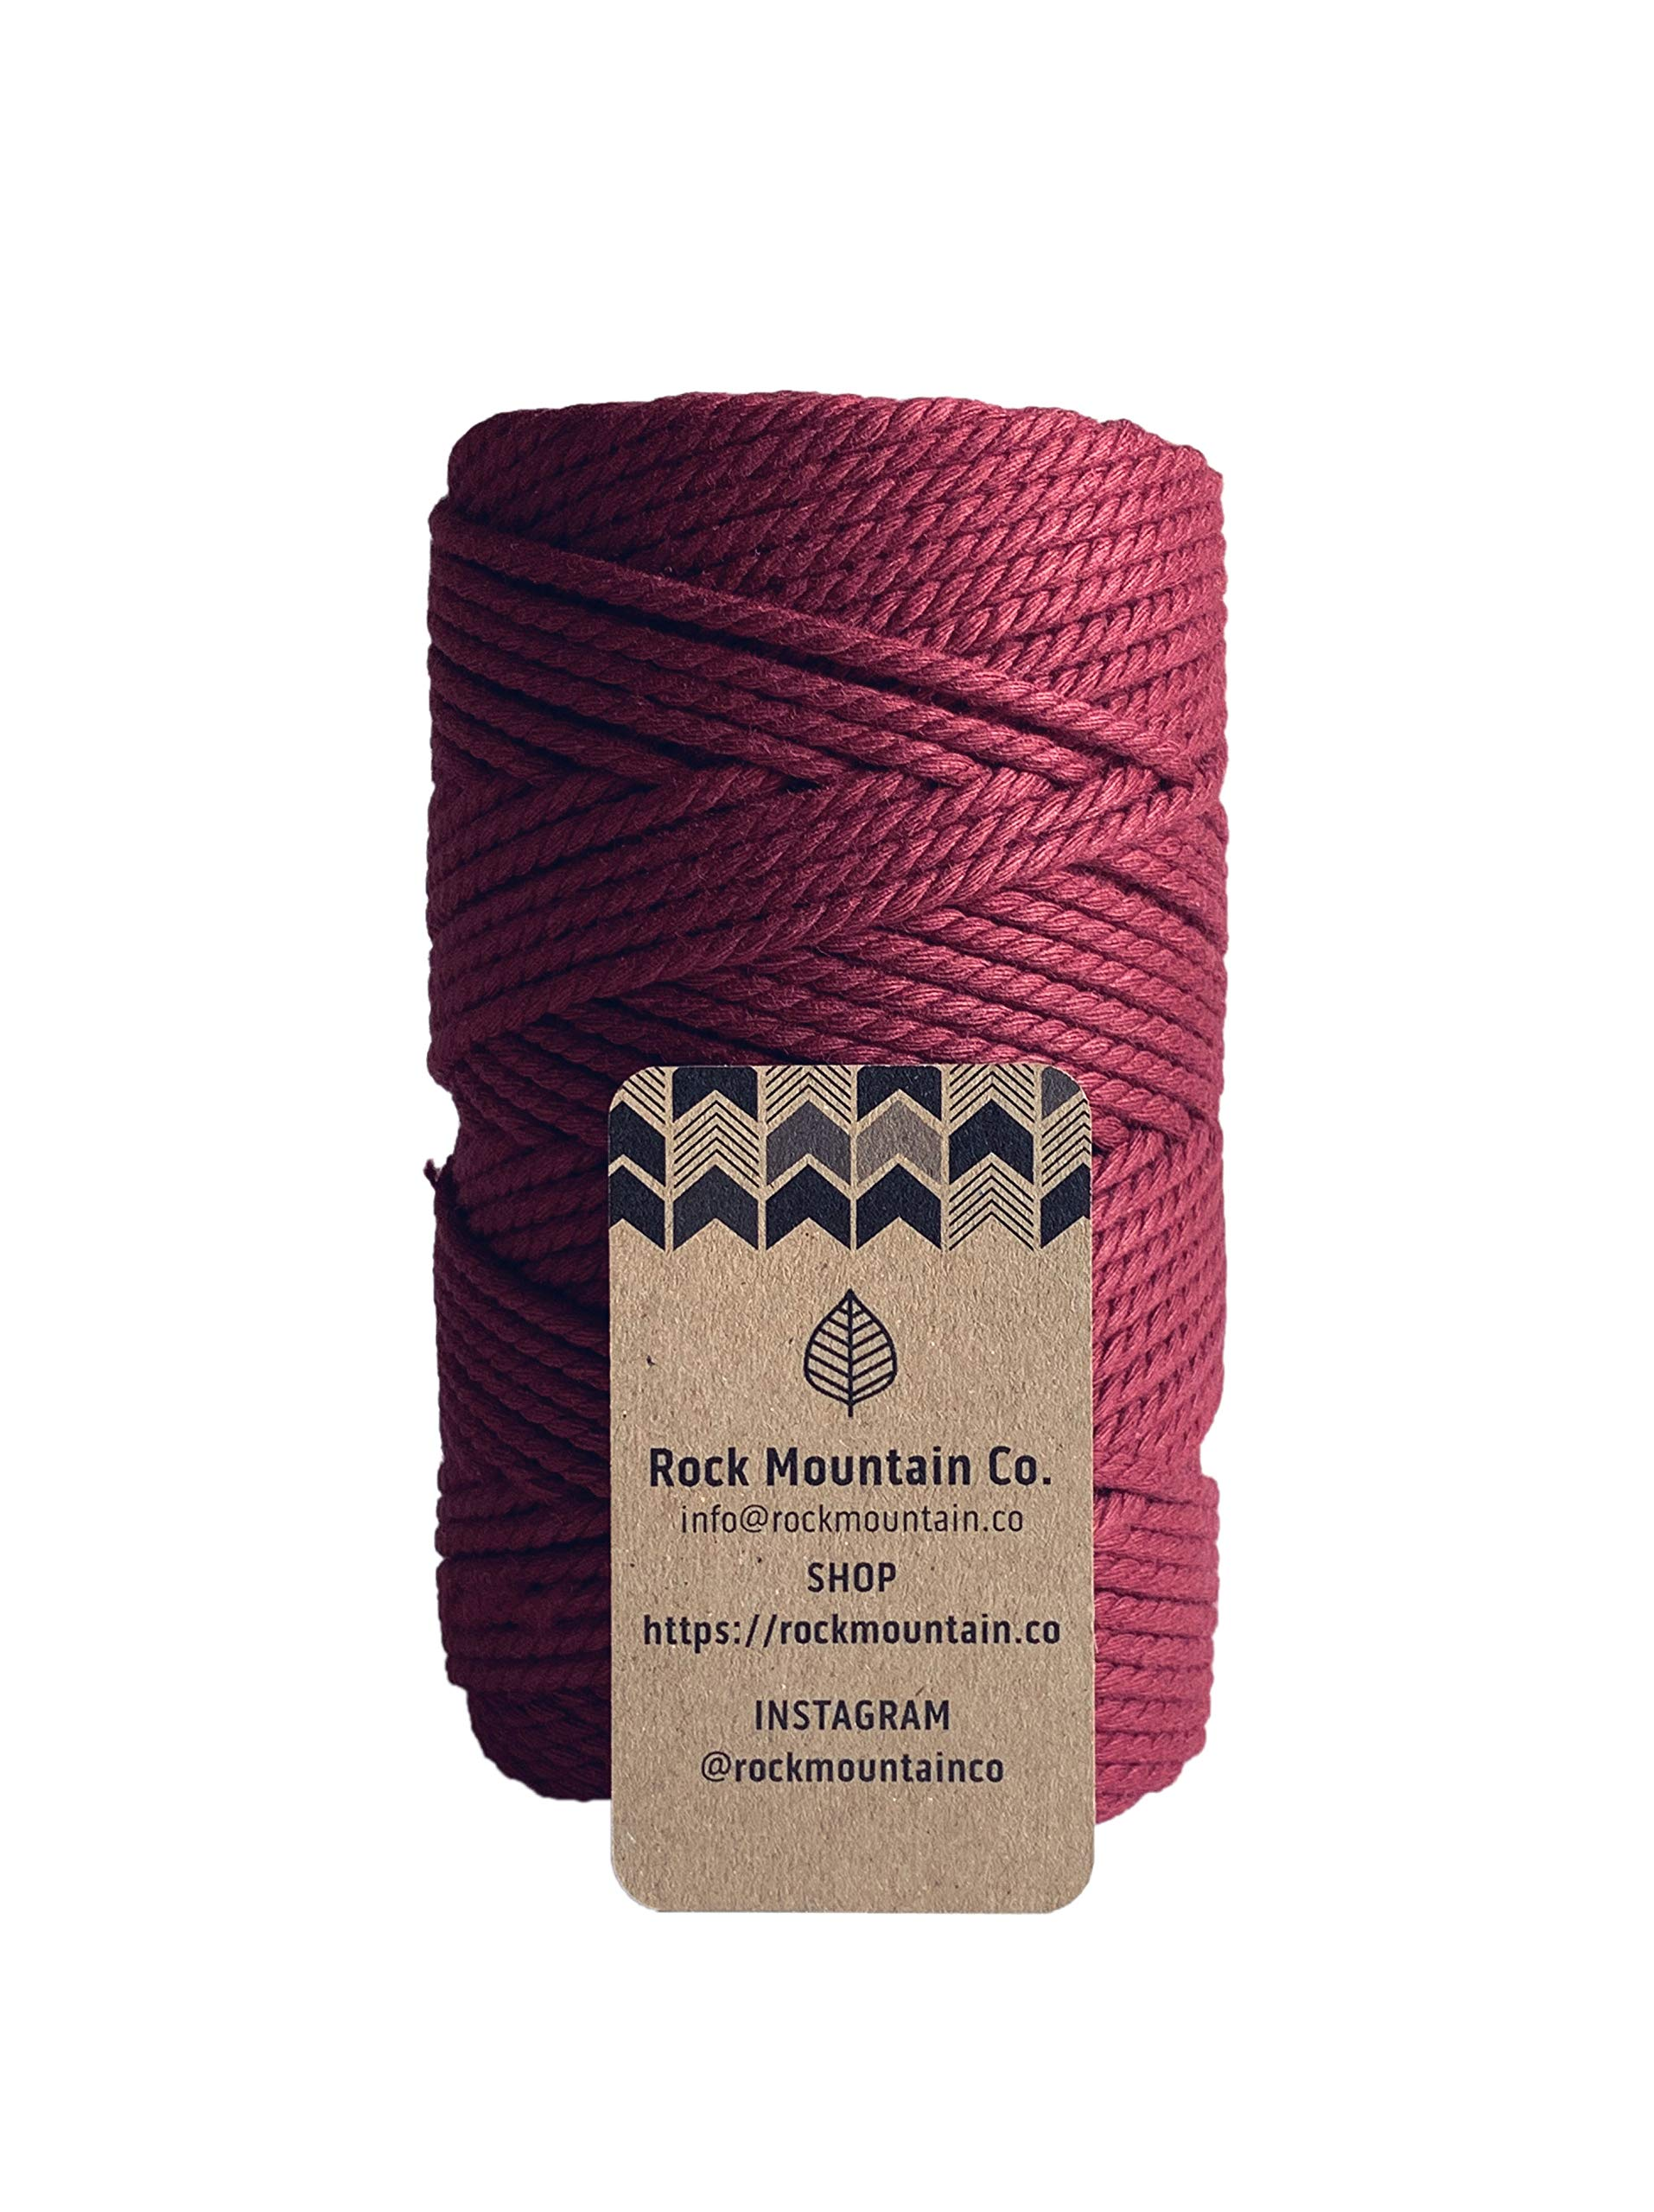 4mm 3 Strand Twisted Macrame Rope - Red Velvet/Burgundy